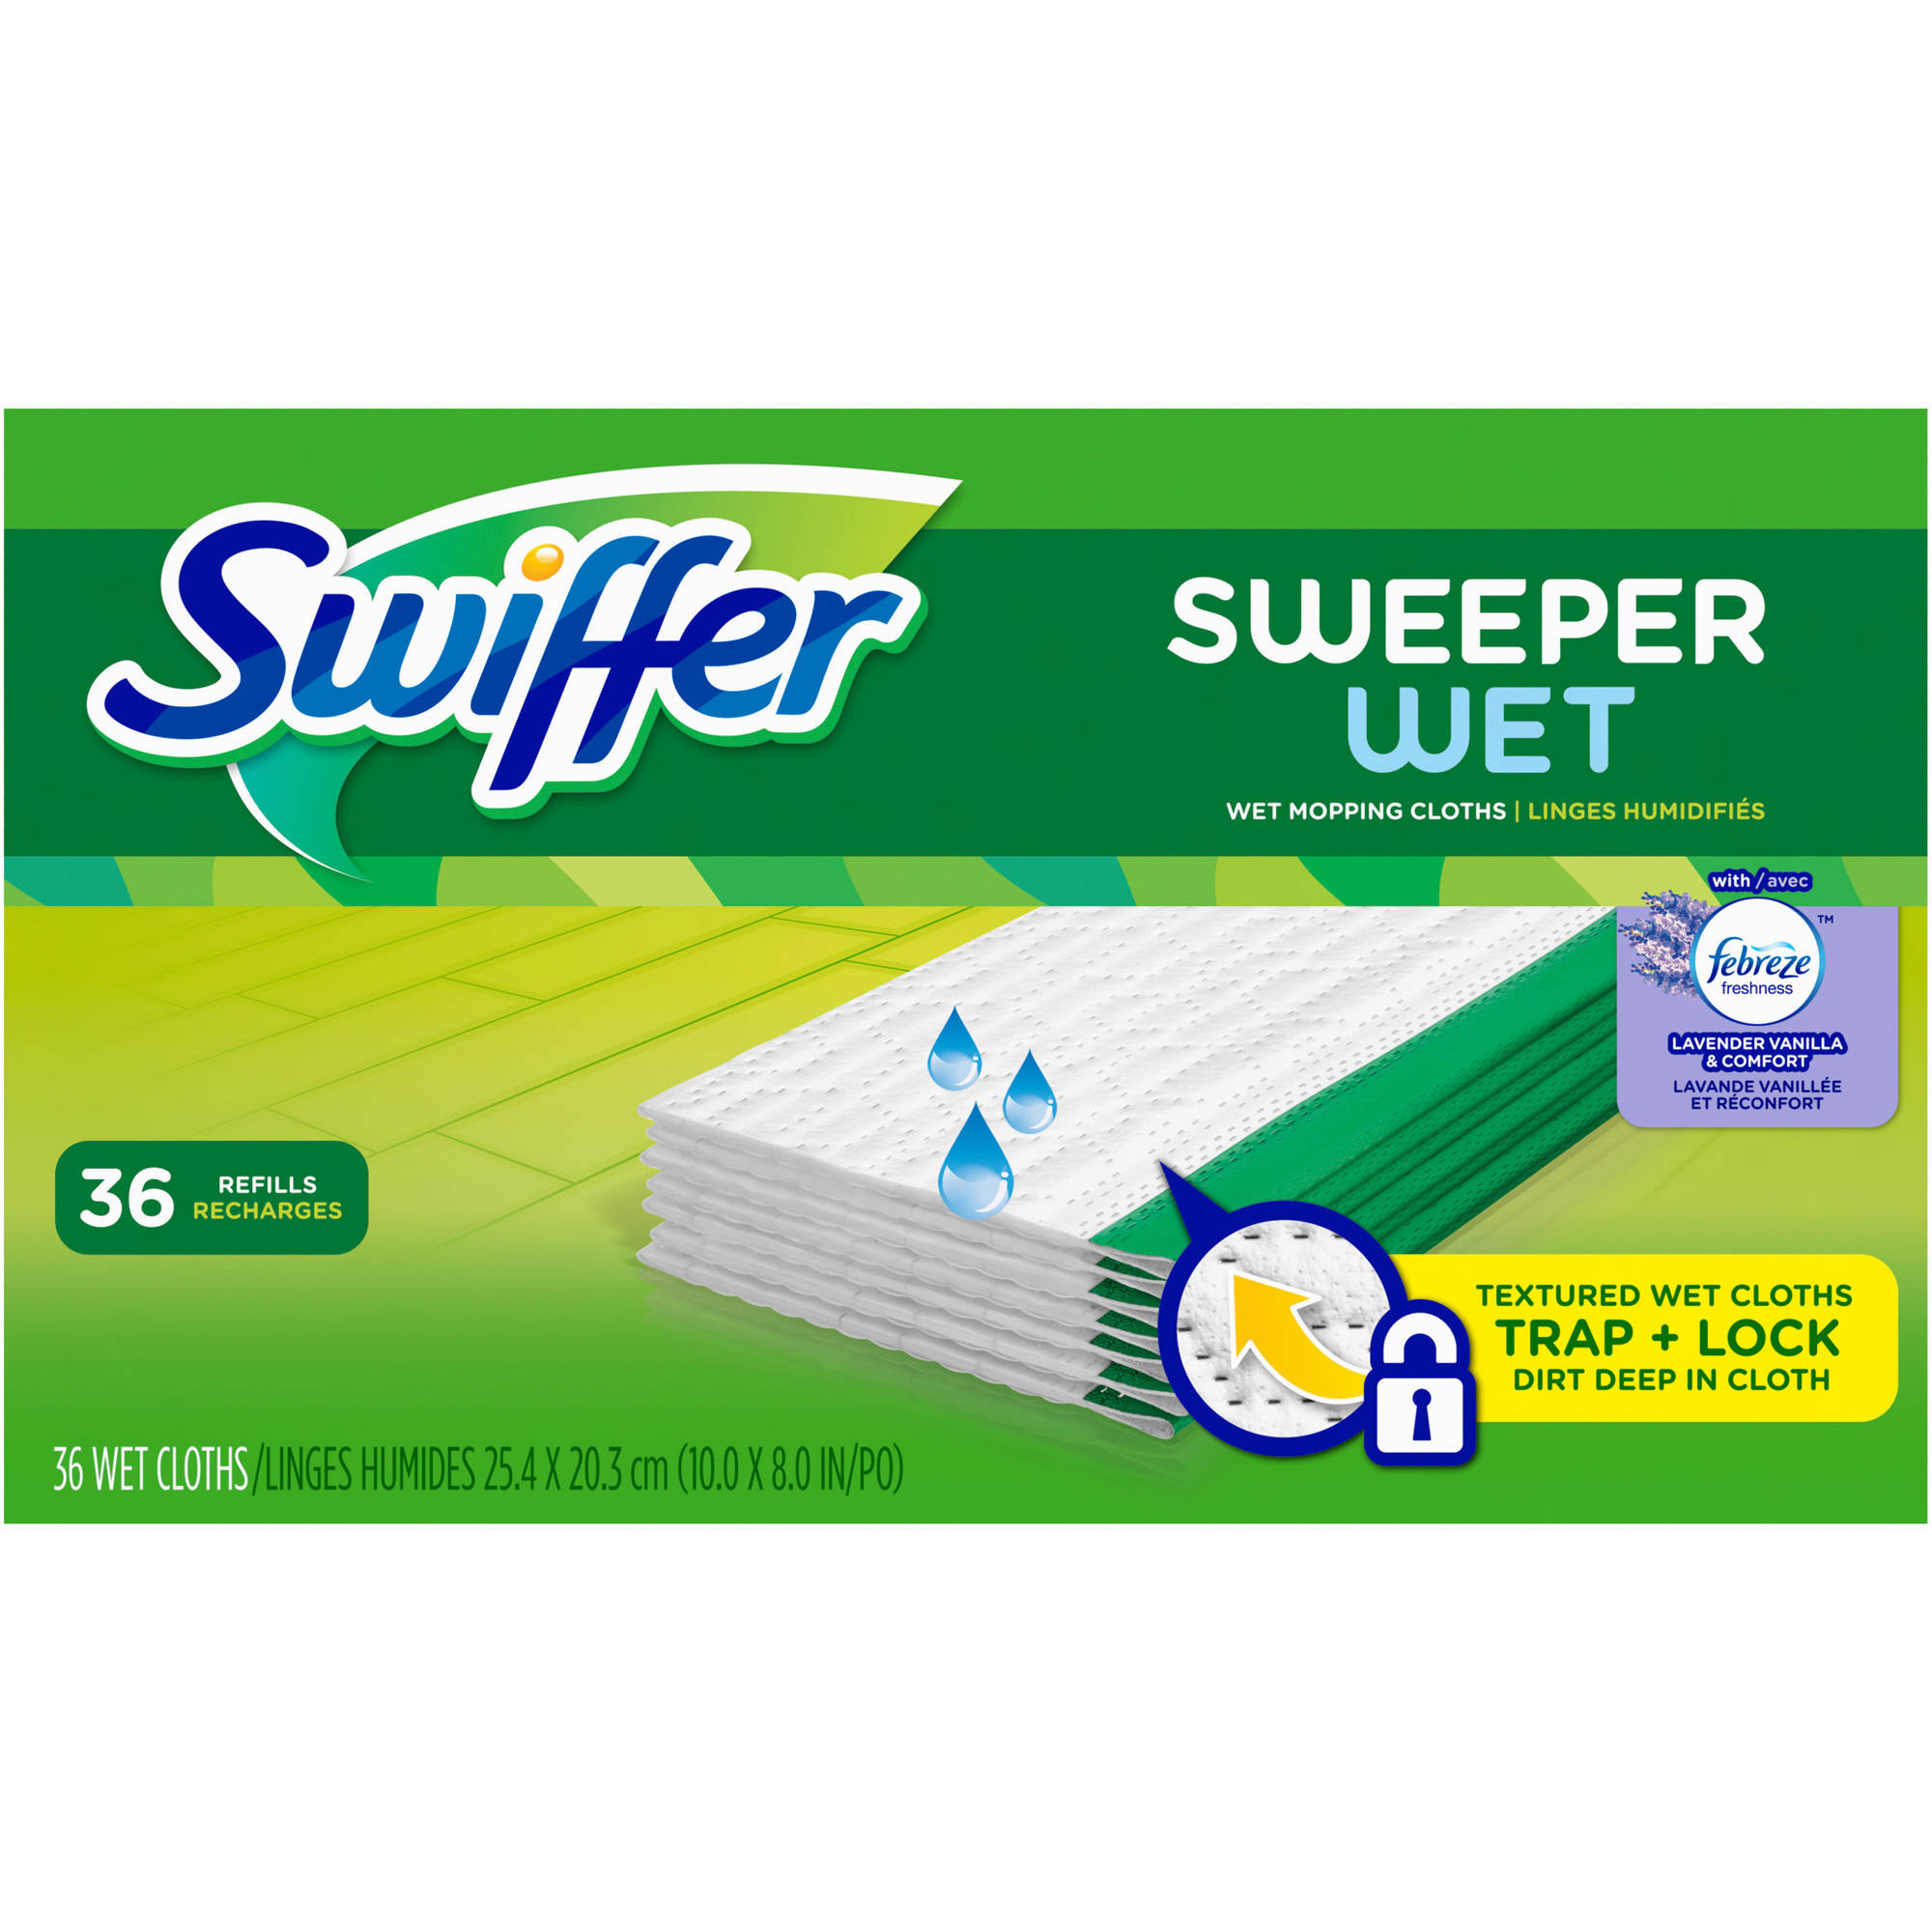 Swiffer Sweeper Wet Mopping Refills with Febreze Freshness, Lavender Vanilla and Comfort (choose your size)